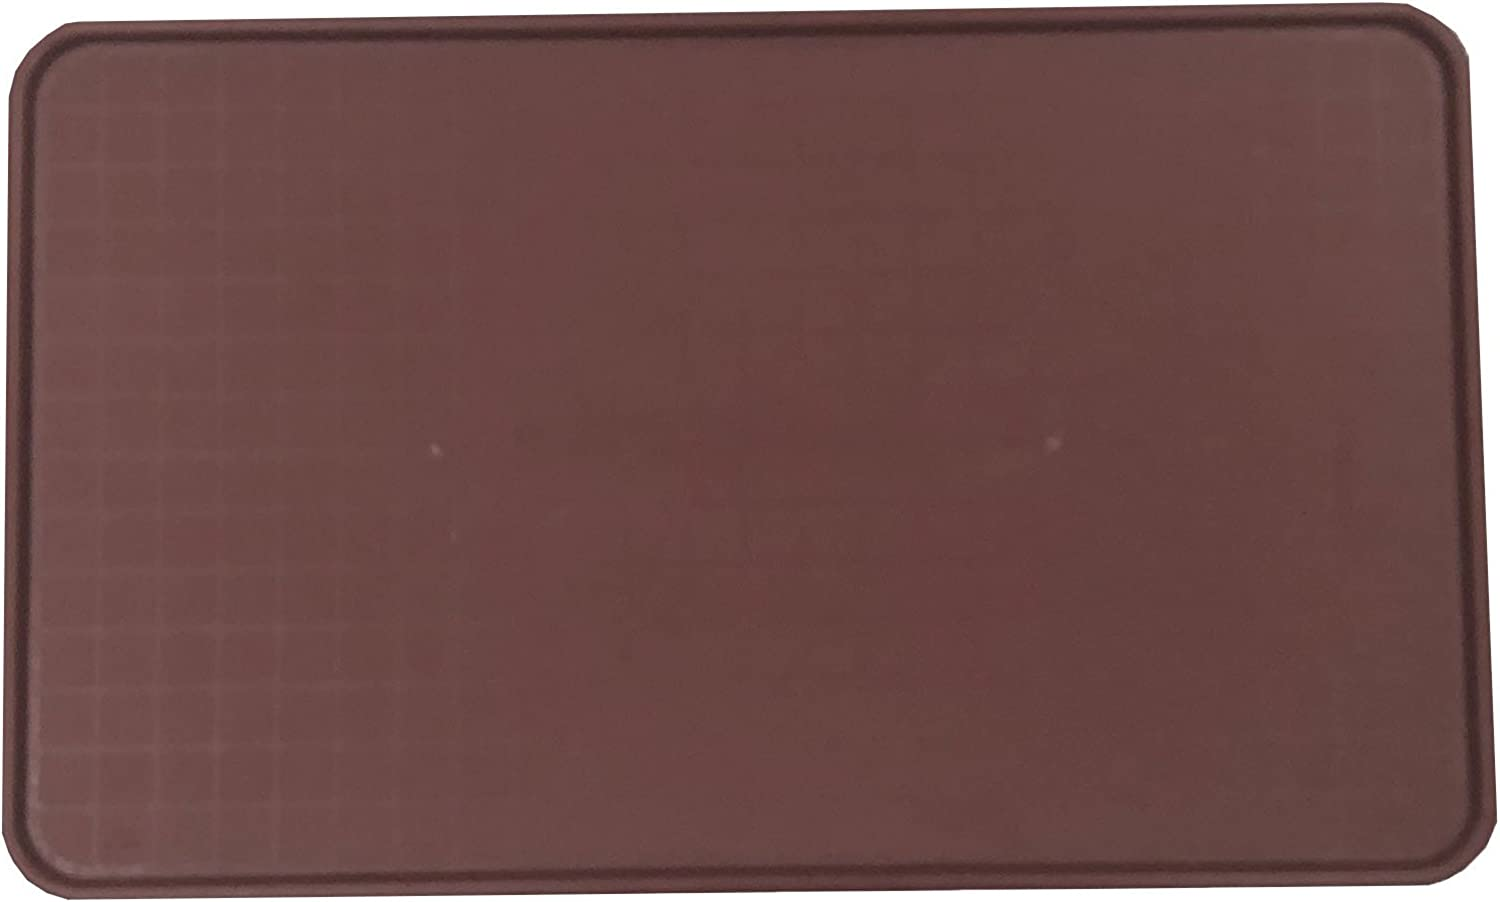 Resilia Pet Food Mat and Boot Tray - Lipped edge to contain spills, Burgundy, 17 inches x 28 inches